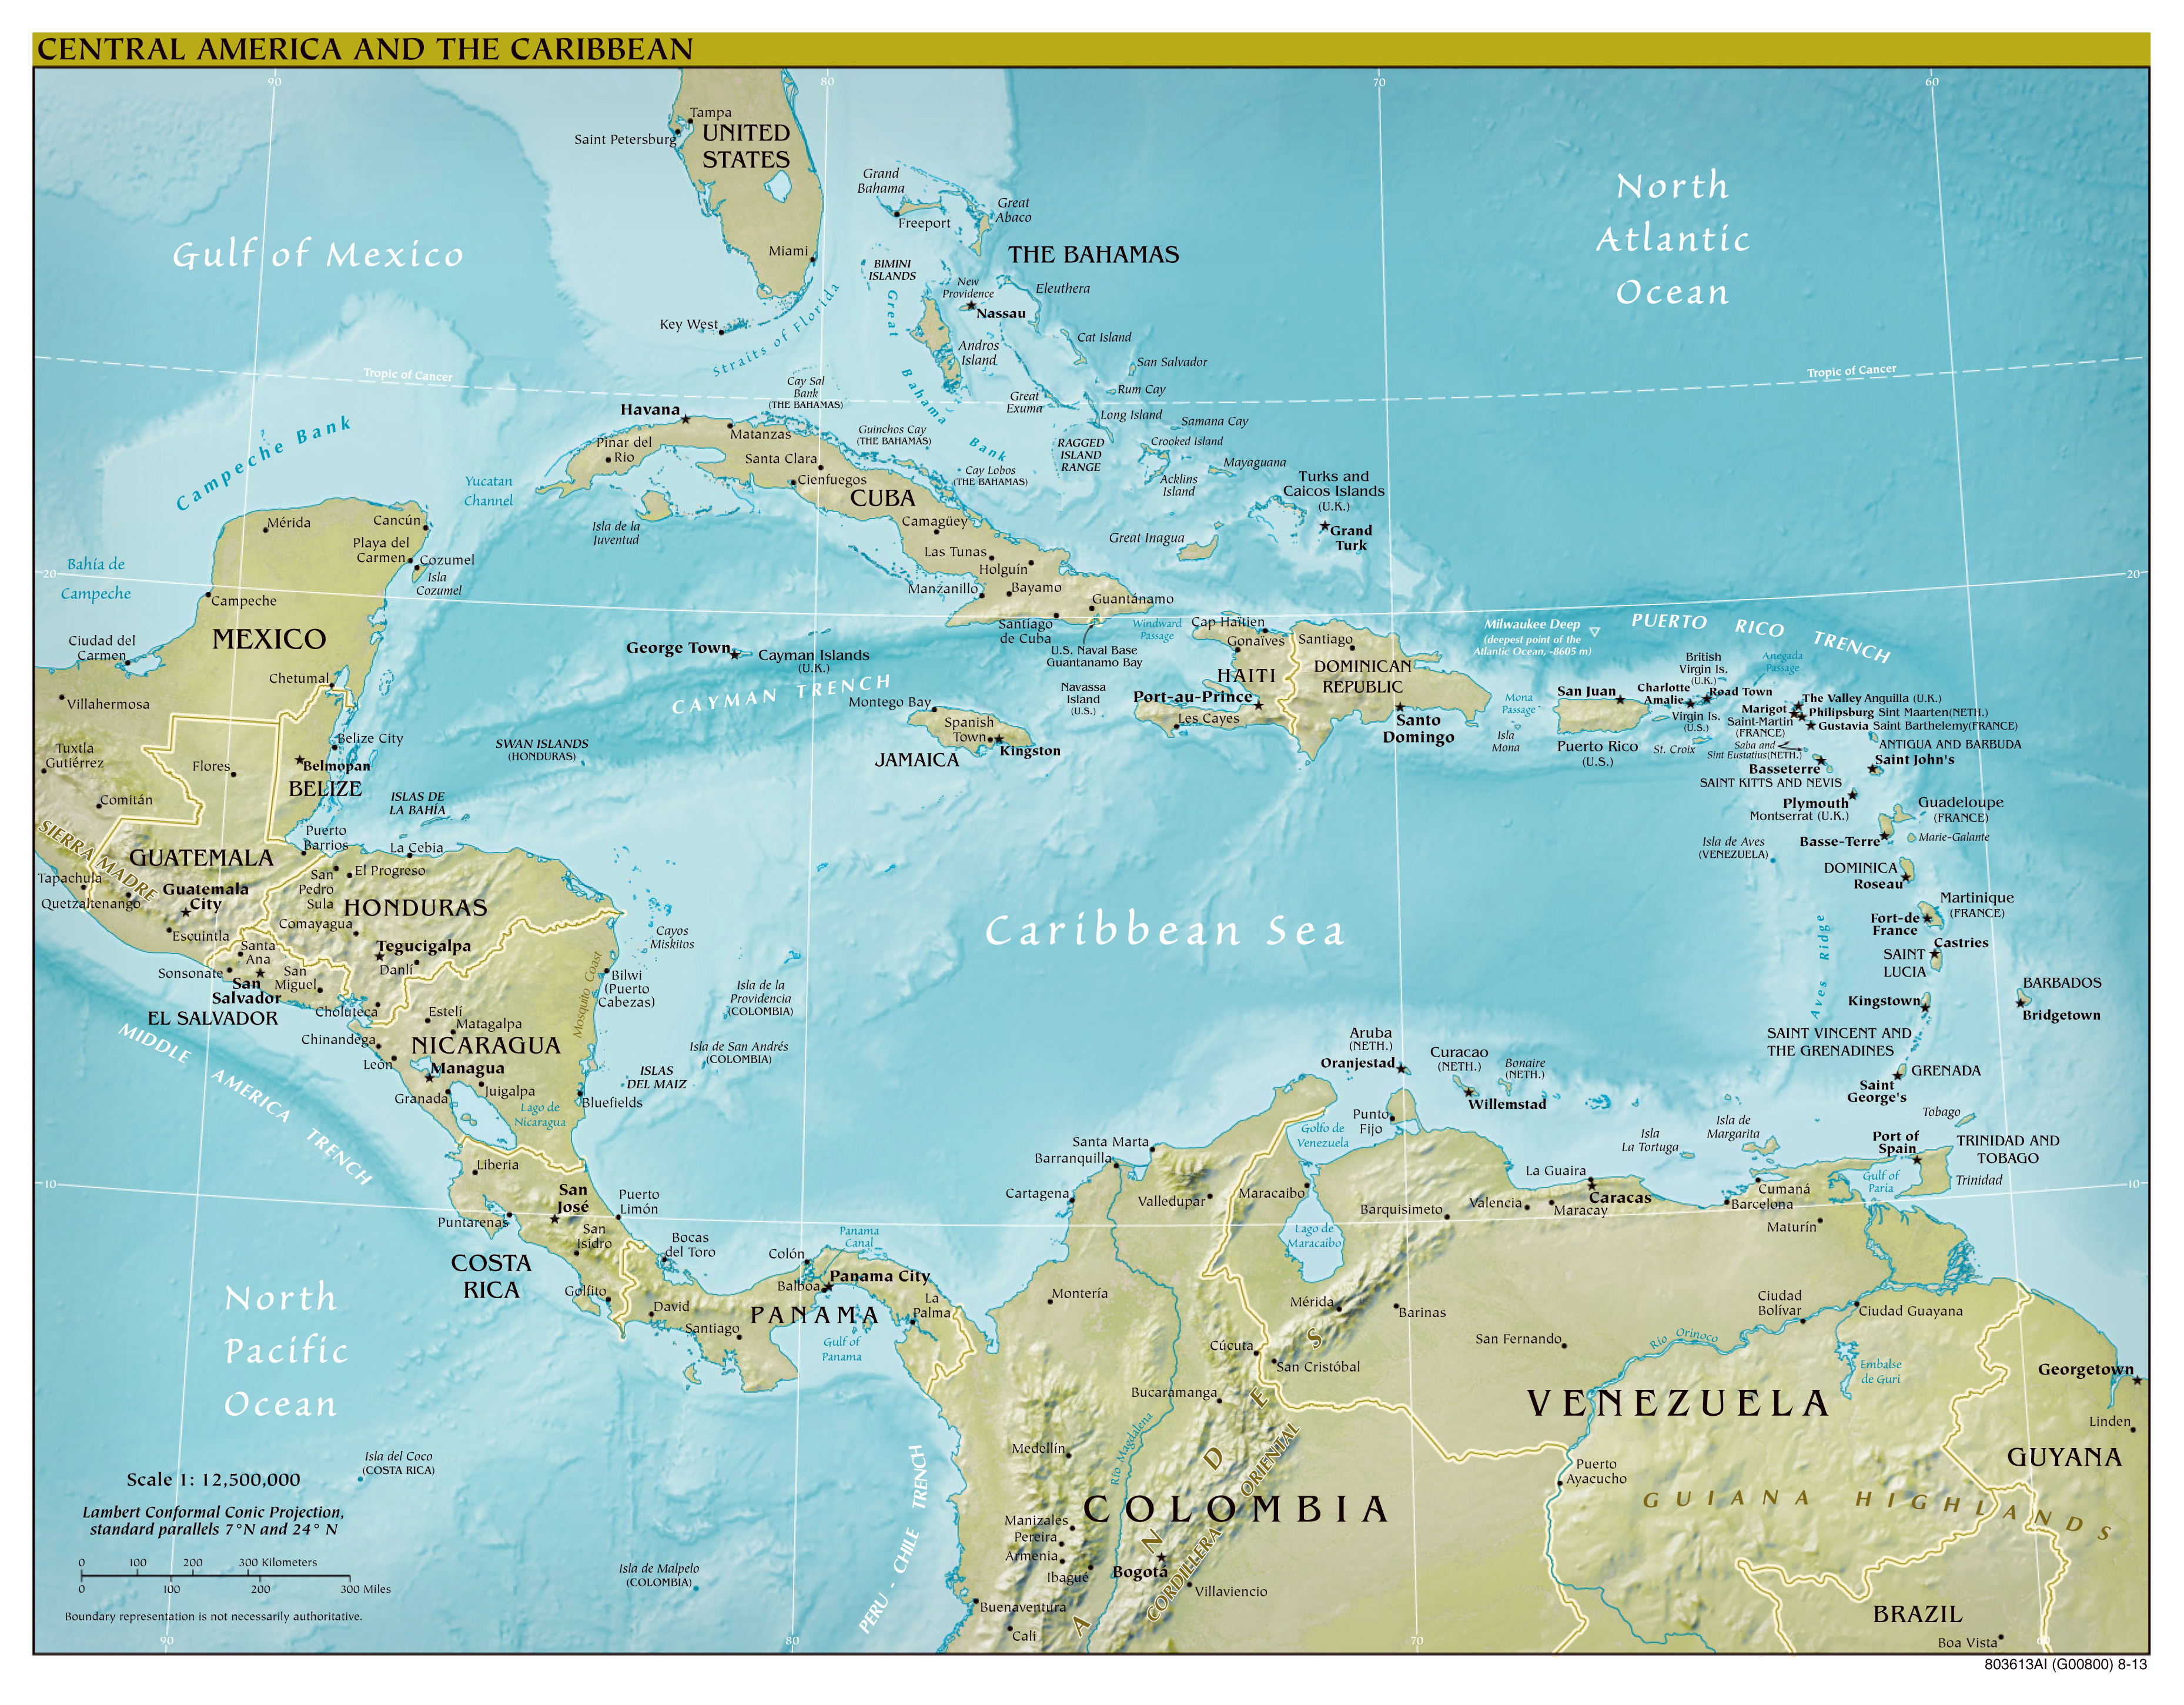 Large Scale Political Map Of Central America And The Caribbean With Relief Capitals And Major Cities 2013 Vidiani Com Maps Of All Countries In One Place